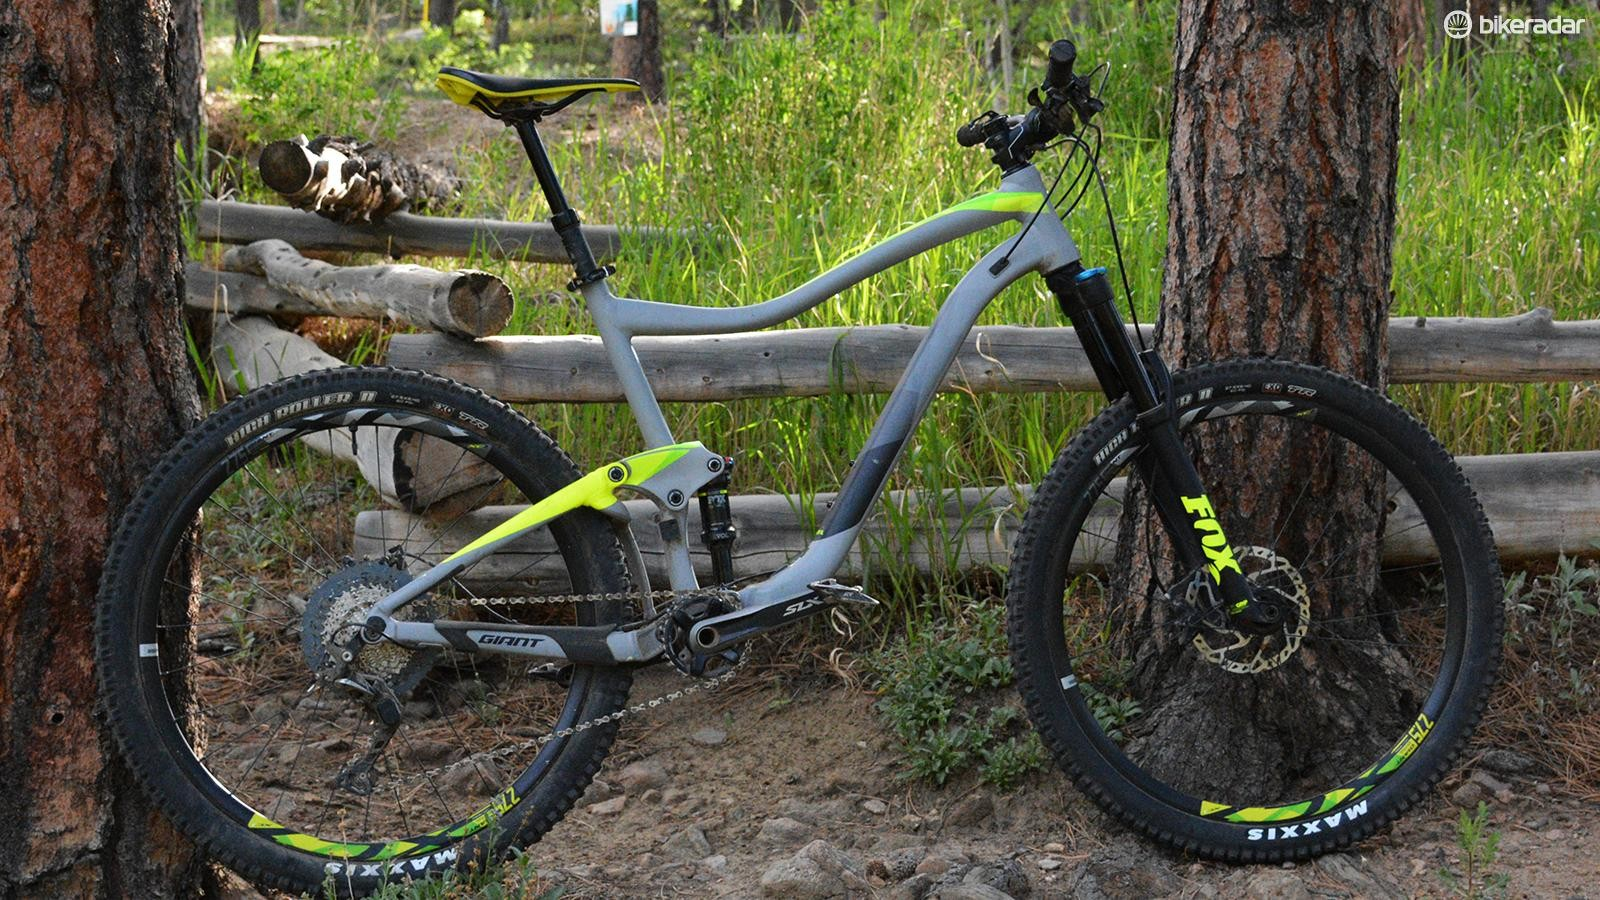 Giant's Trance 2 features 27.5in wheels and 150/140mm front and rear travel